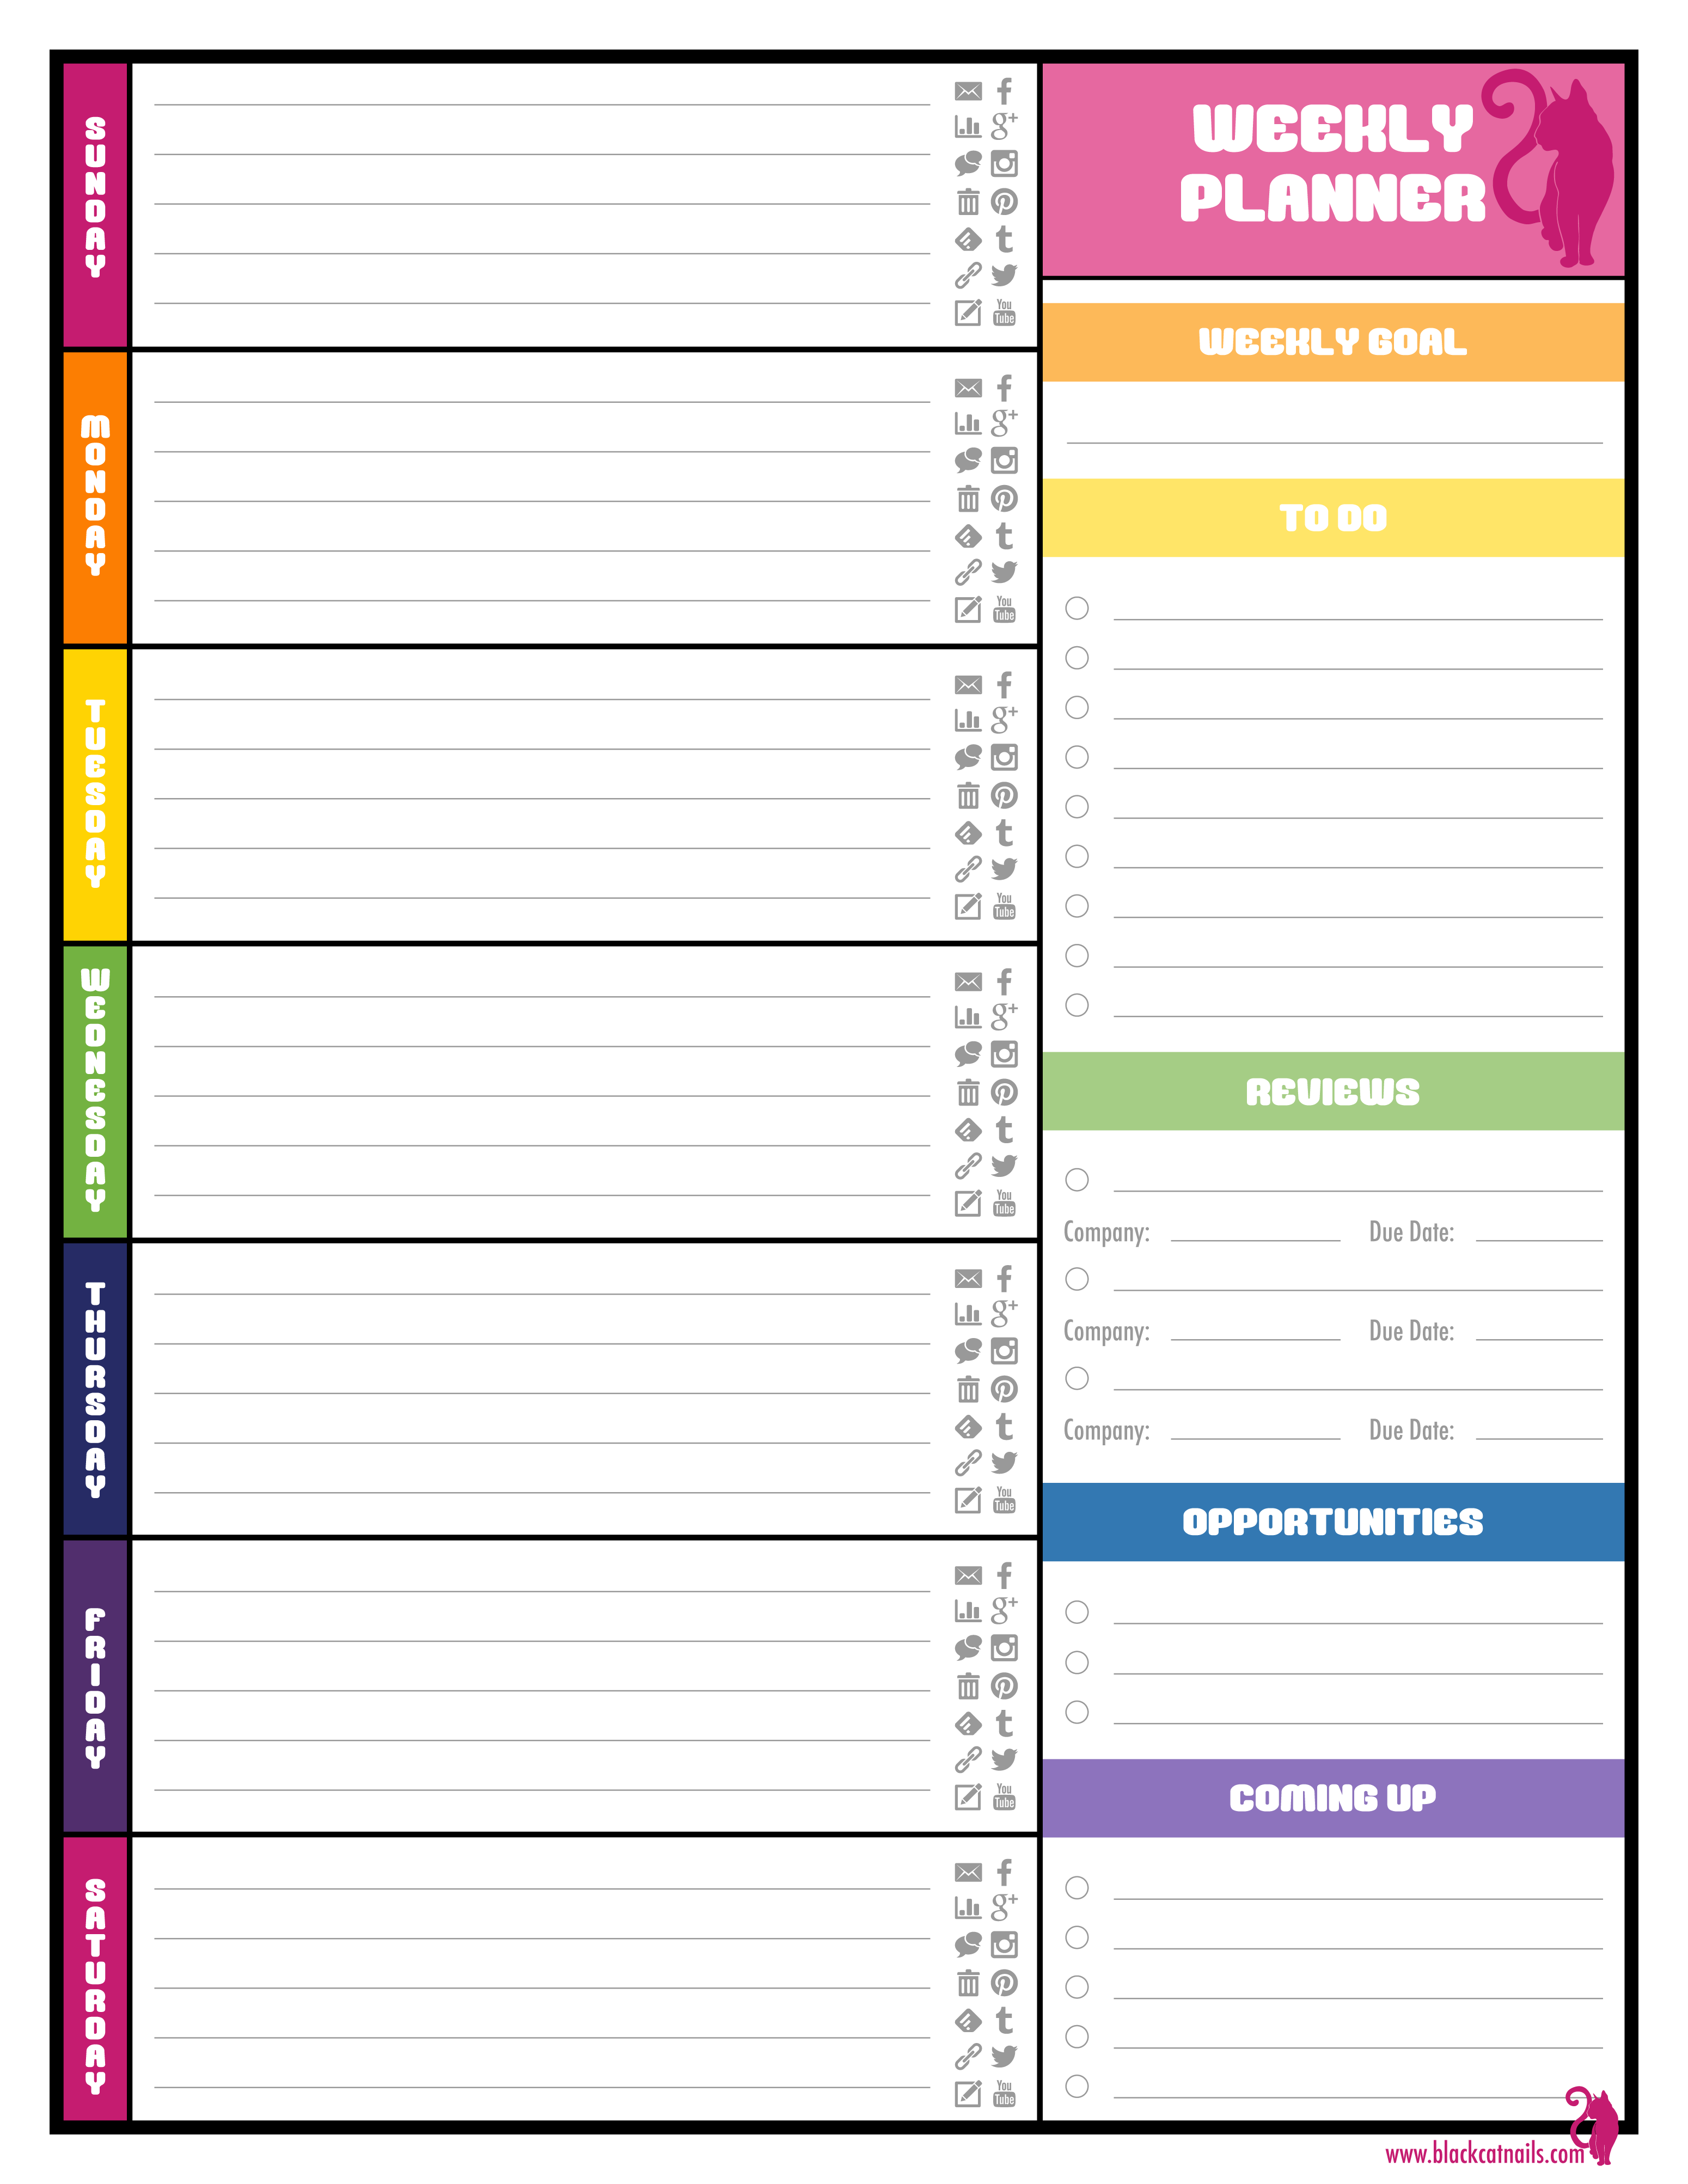 Weekly Planner Template Free Printable Weekly Planner for Excel